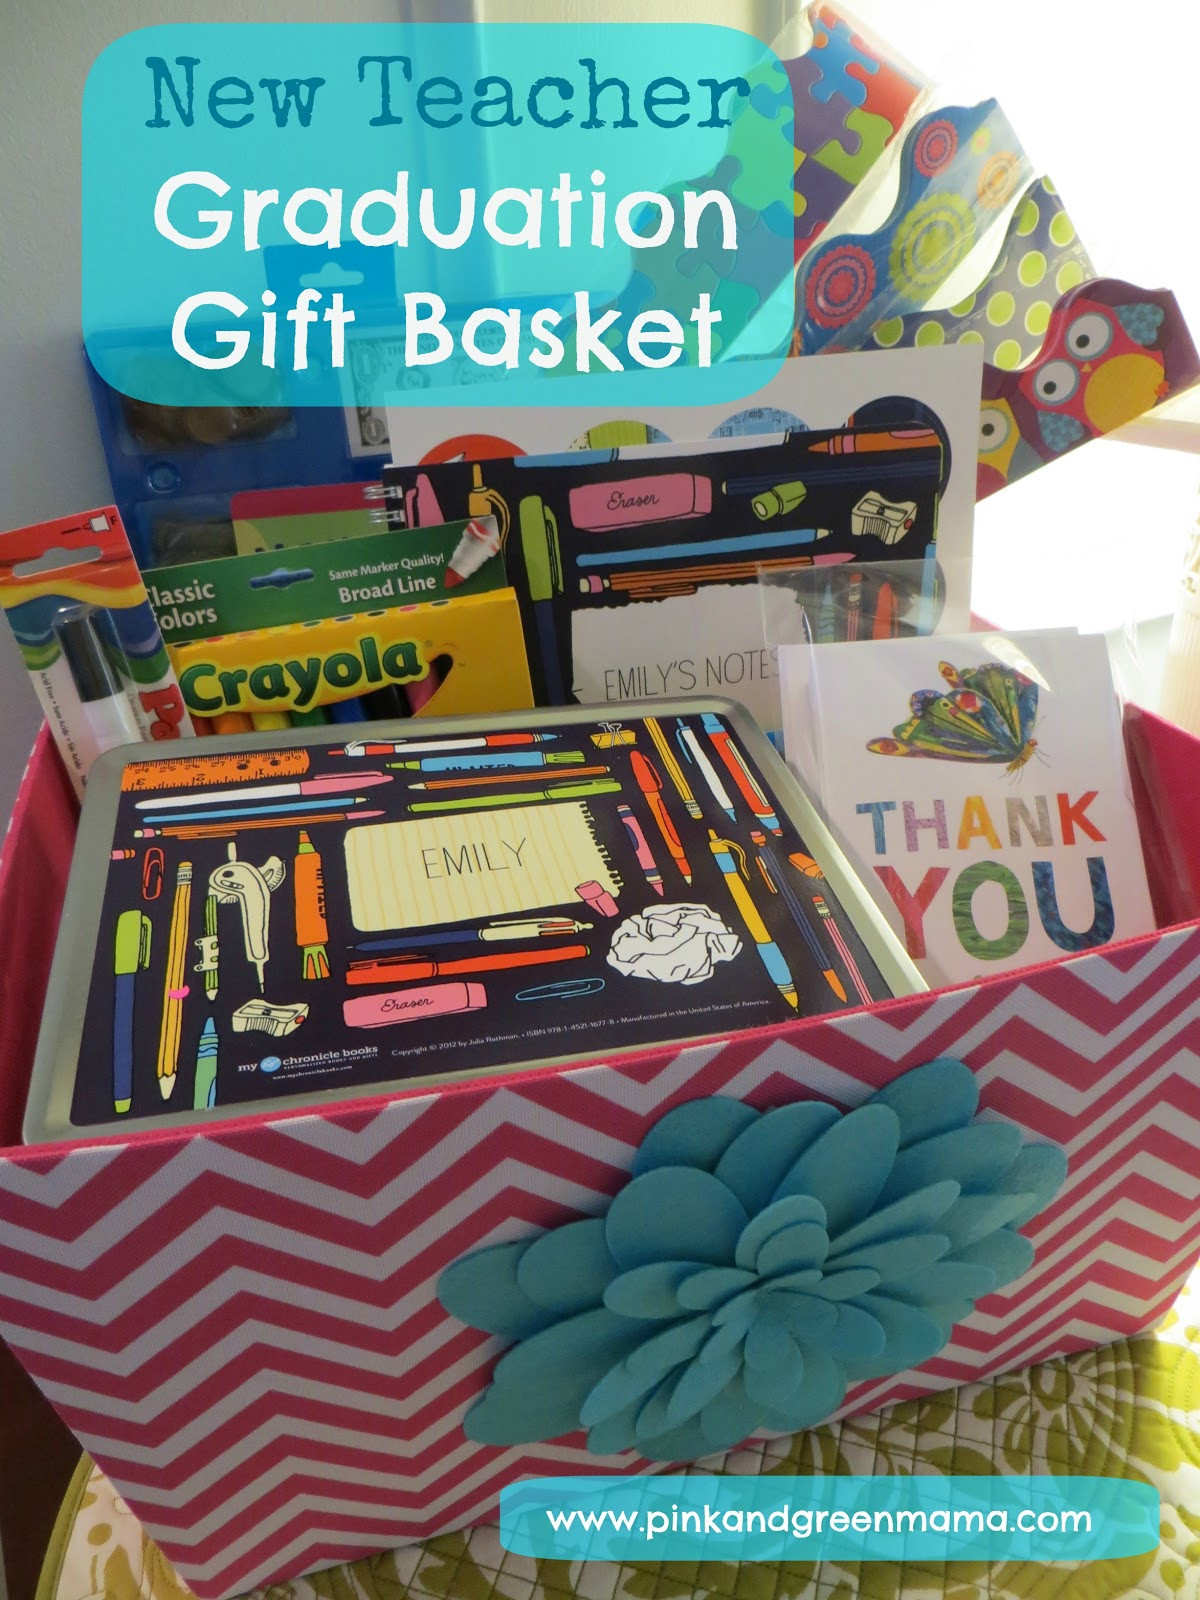 New Teacher Gift Basket Ideas  Pink and Green Mama Graduation Gift Basket For A New